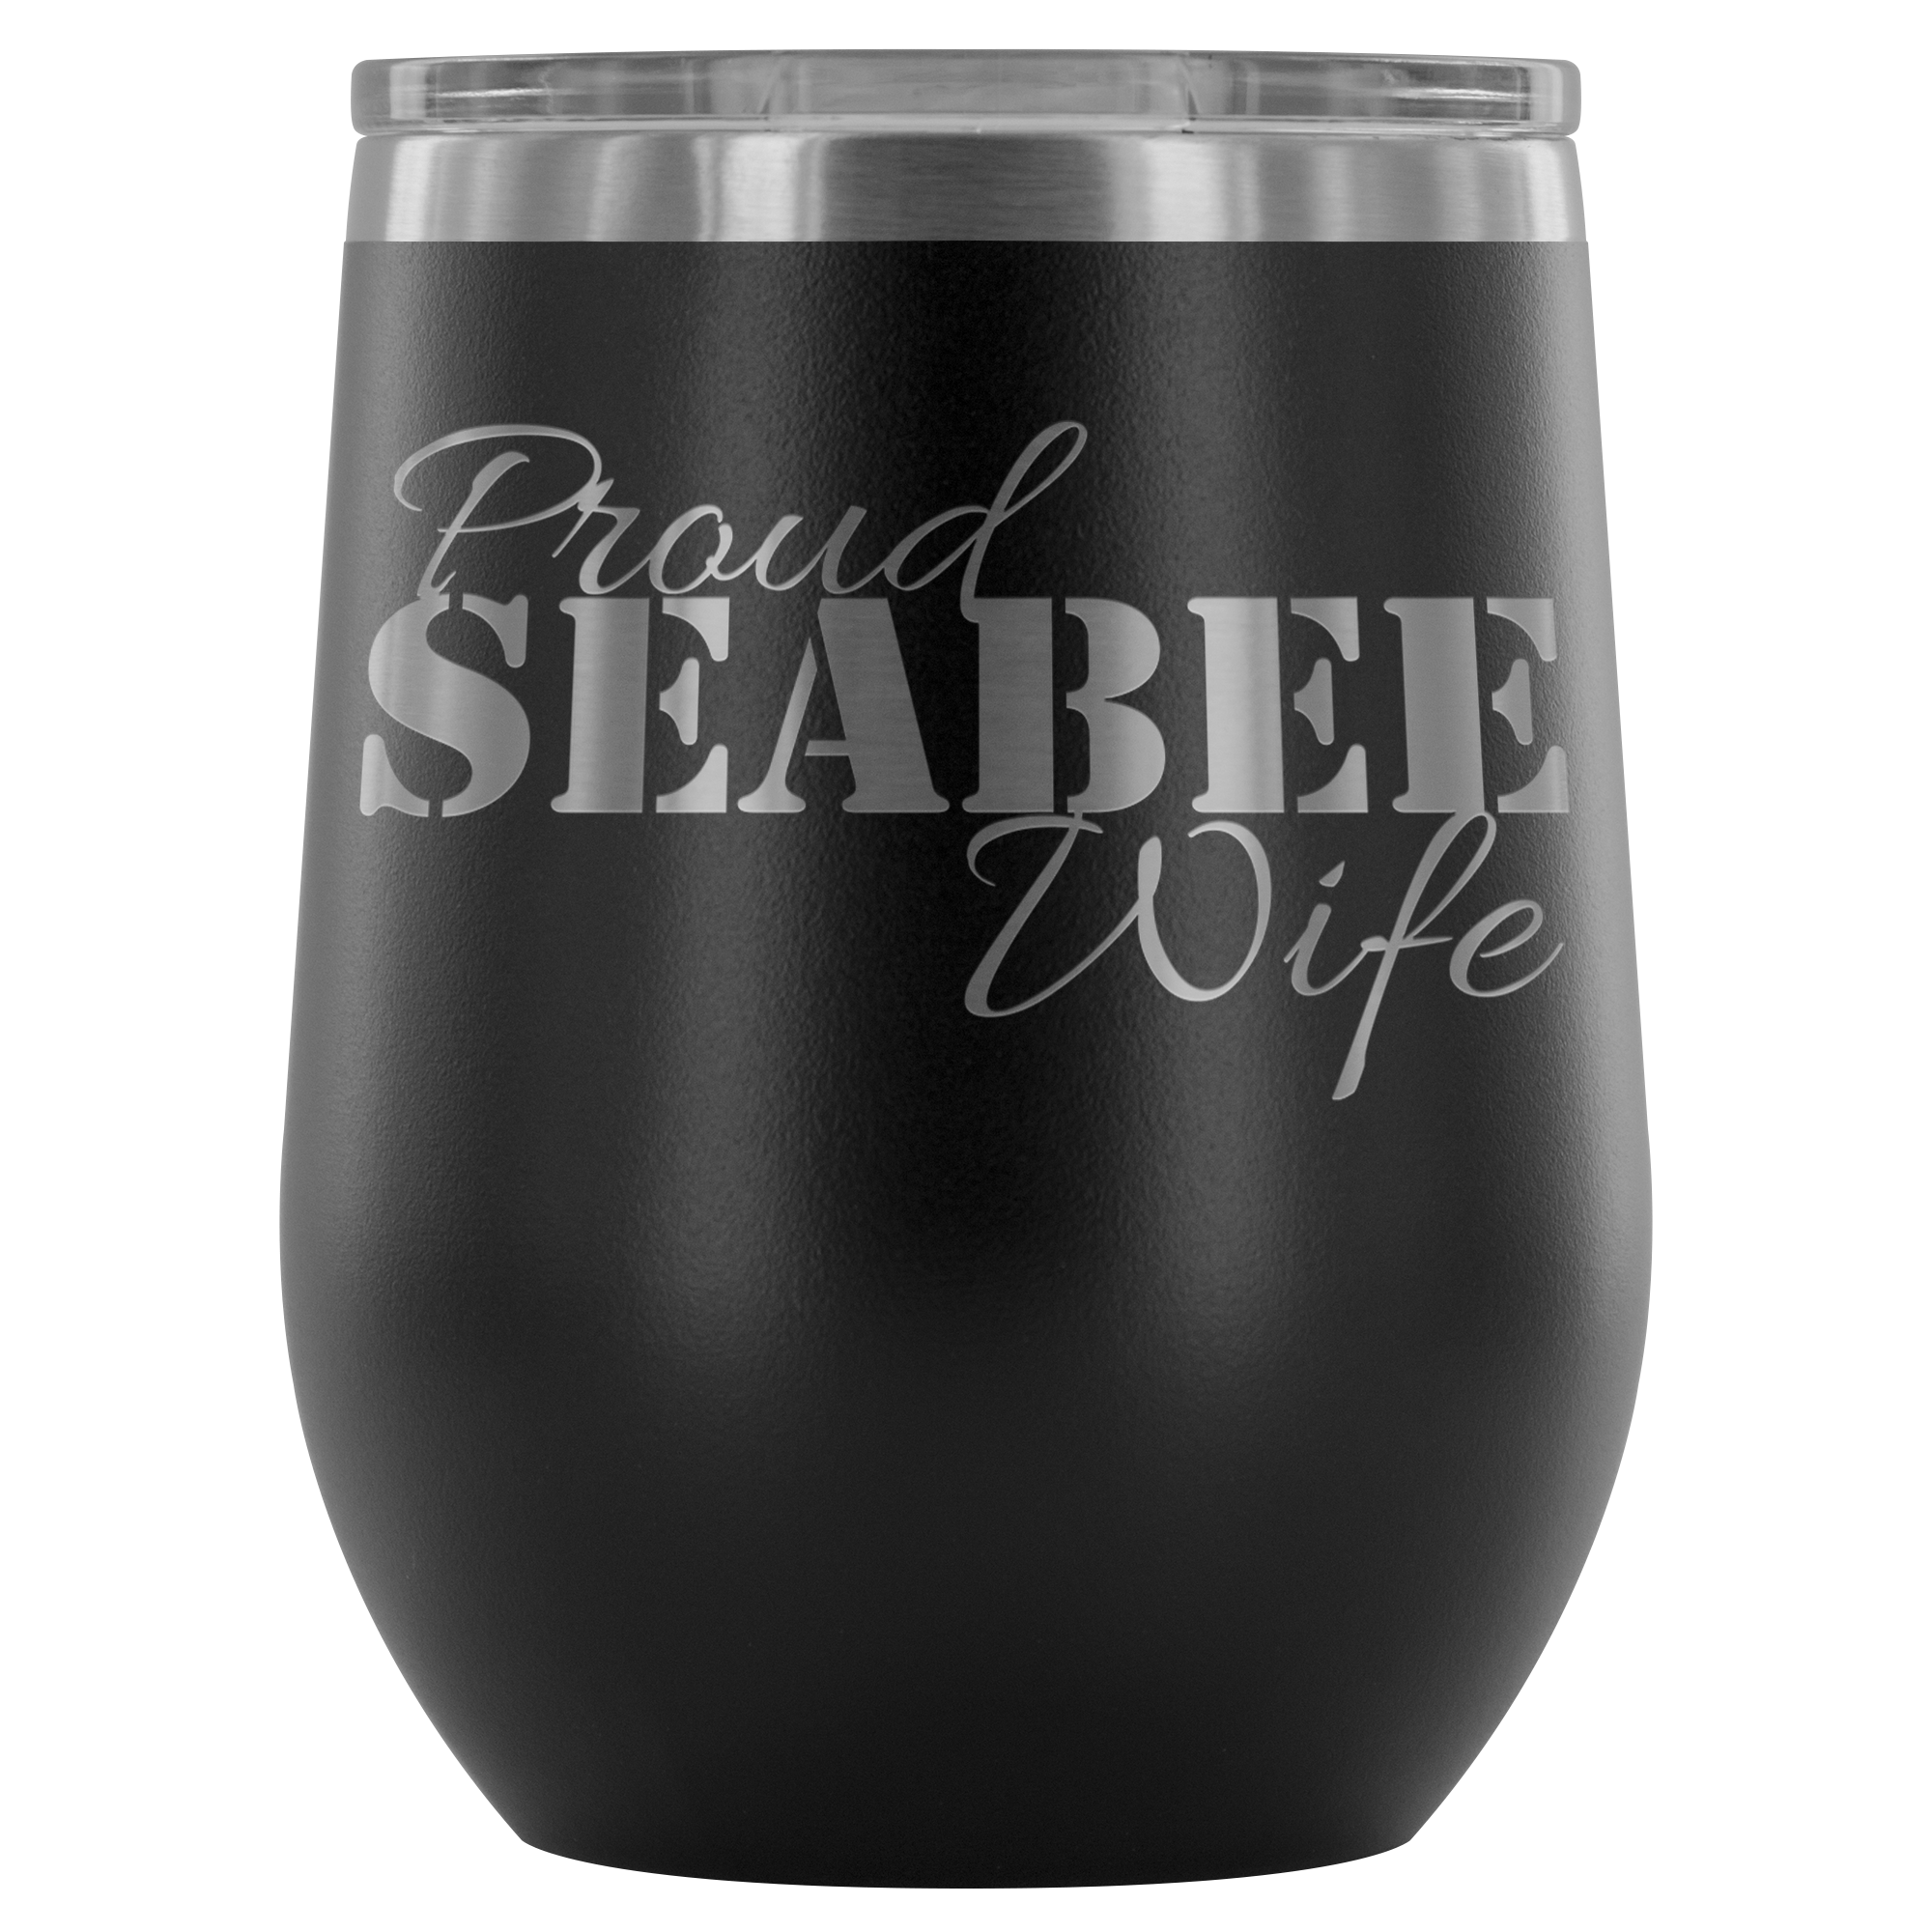 Proud Seabee Wife - Wine Tumbler